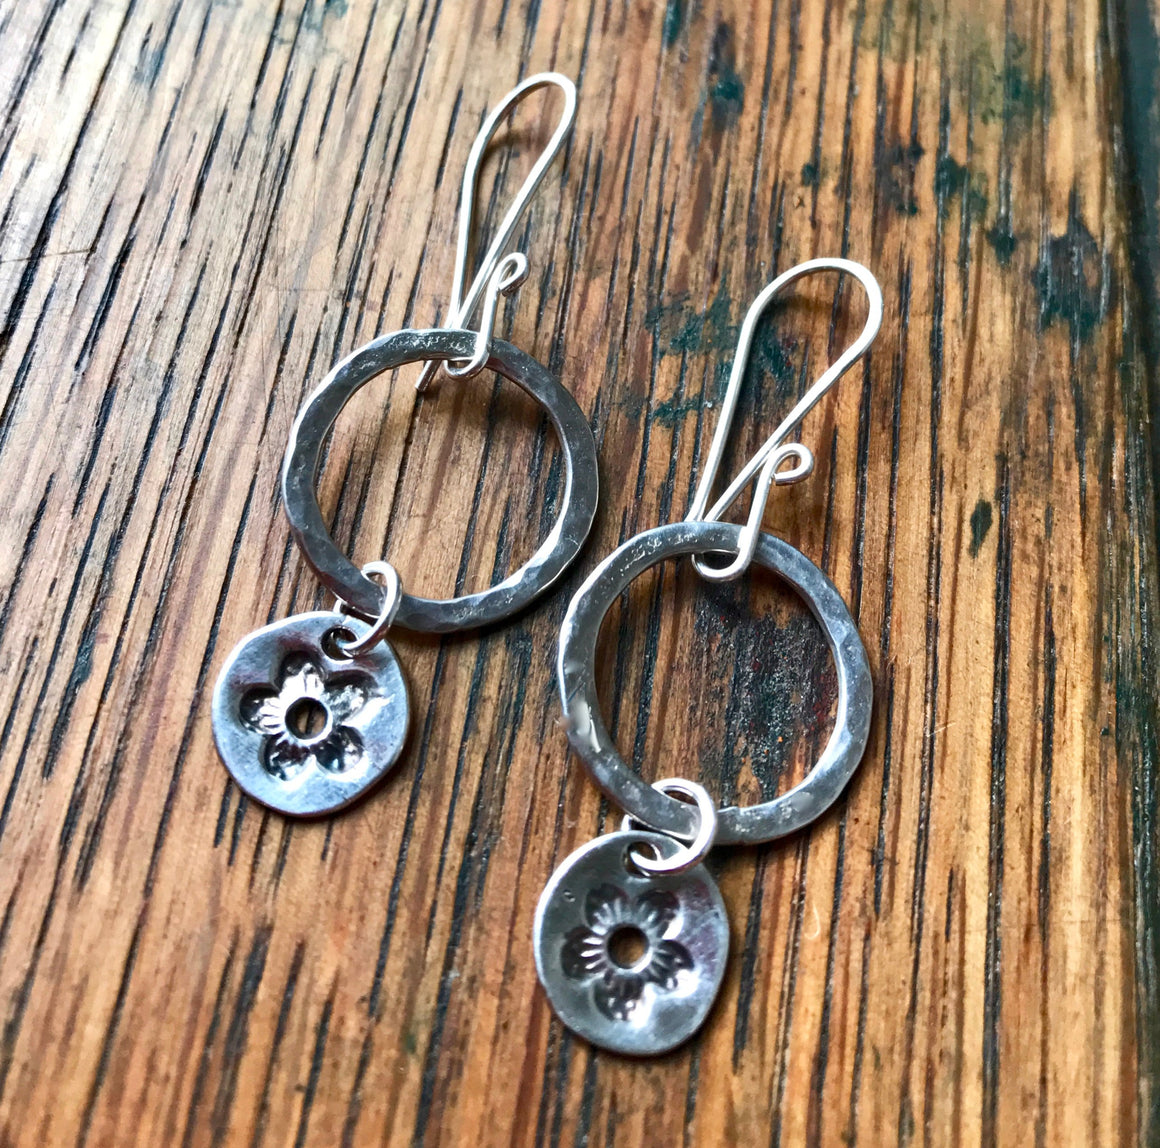 Sterling Silver Hammered Ring Earrings with Circular Silver Flower Dangles